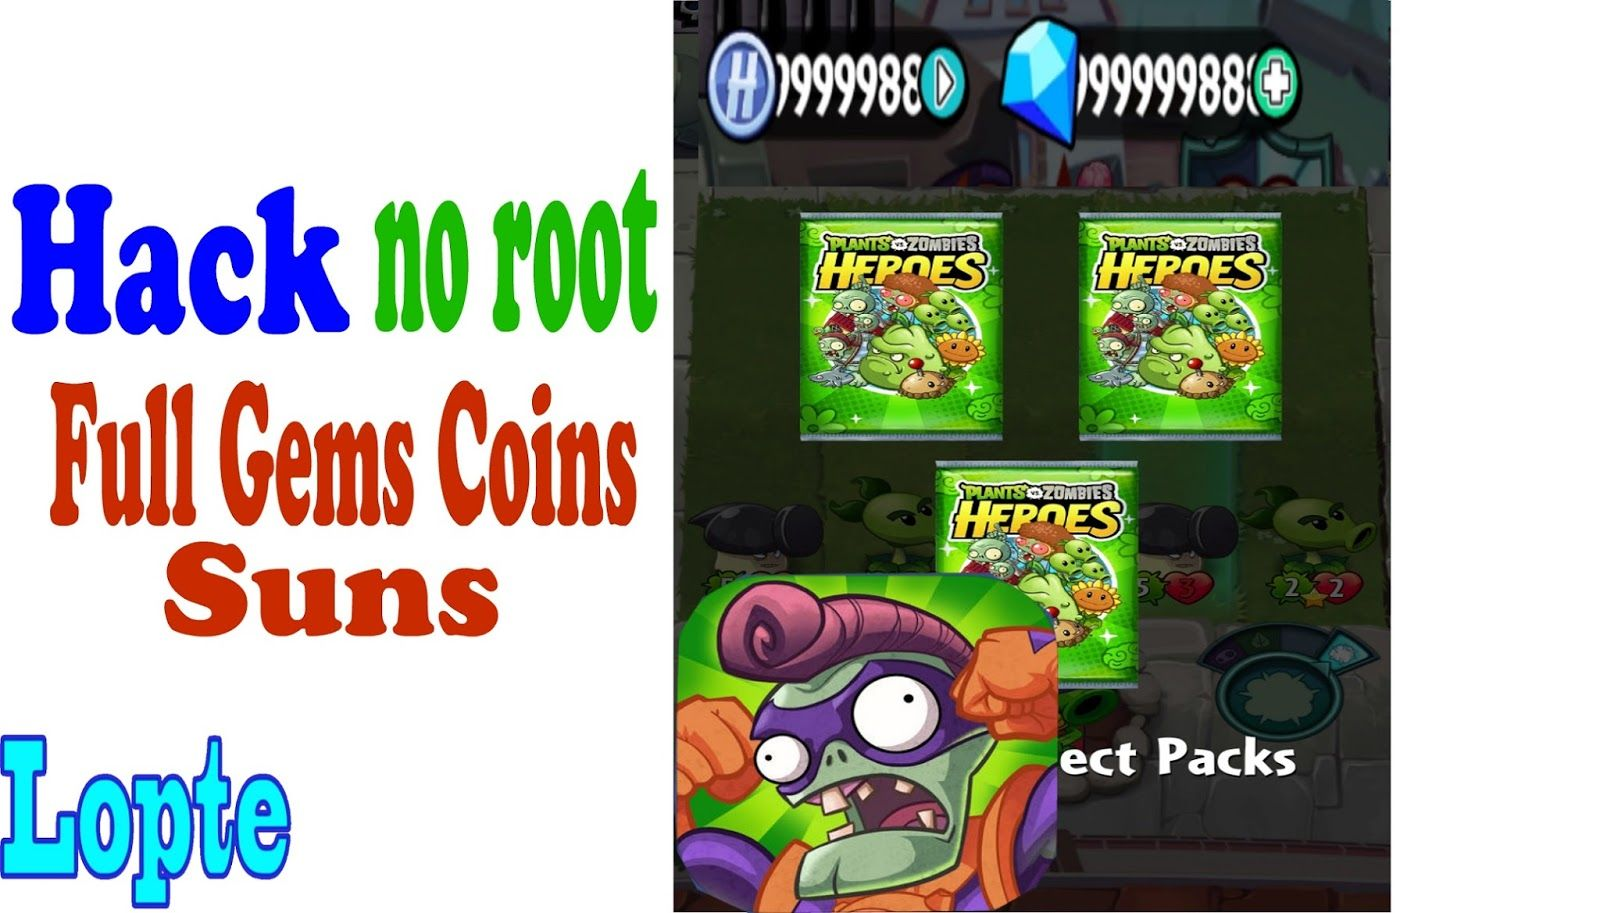 ed34beaac01429388b324c39c3f181e3 - How To Get The Green Key In Pvz Gw2